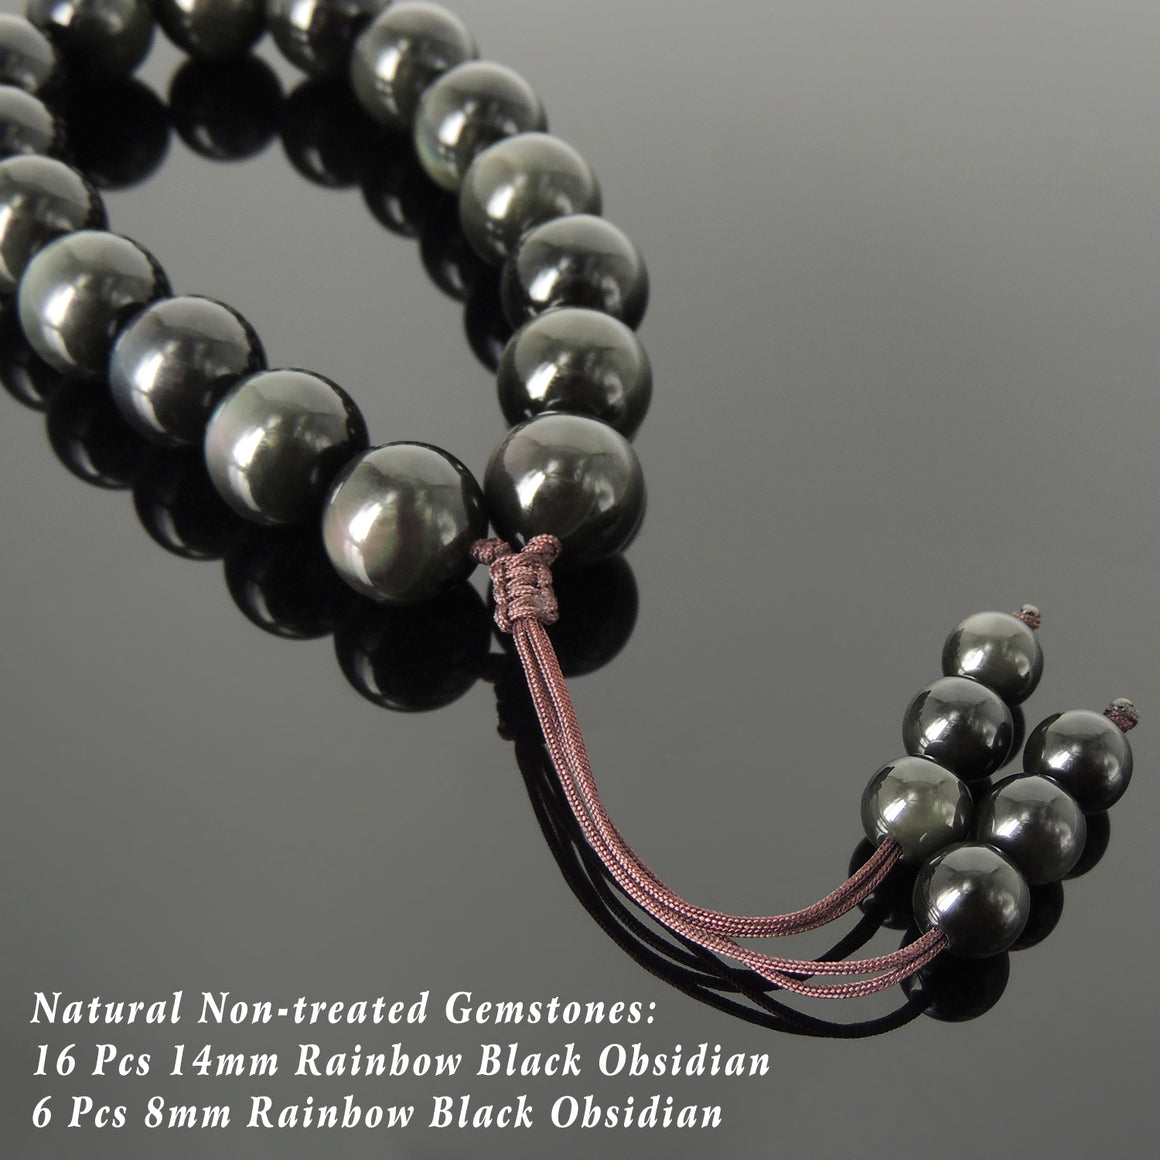 Handmade Adjustable Braided Cords, Healing 14mm Rainbow Black Obsidian Meditation Beads, Natural Gemstones - Men's Women's Protection & Compassion HL005